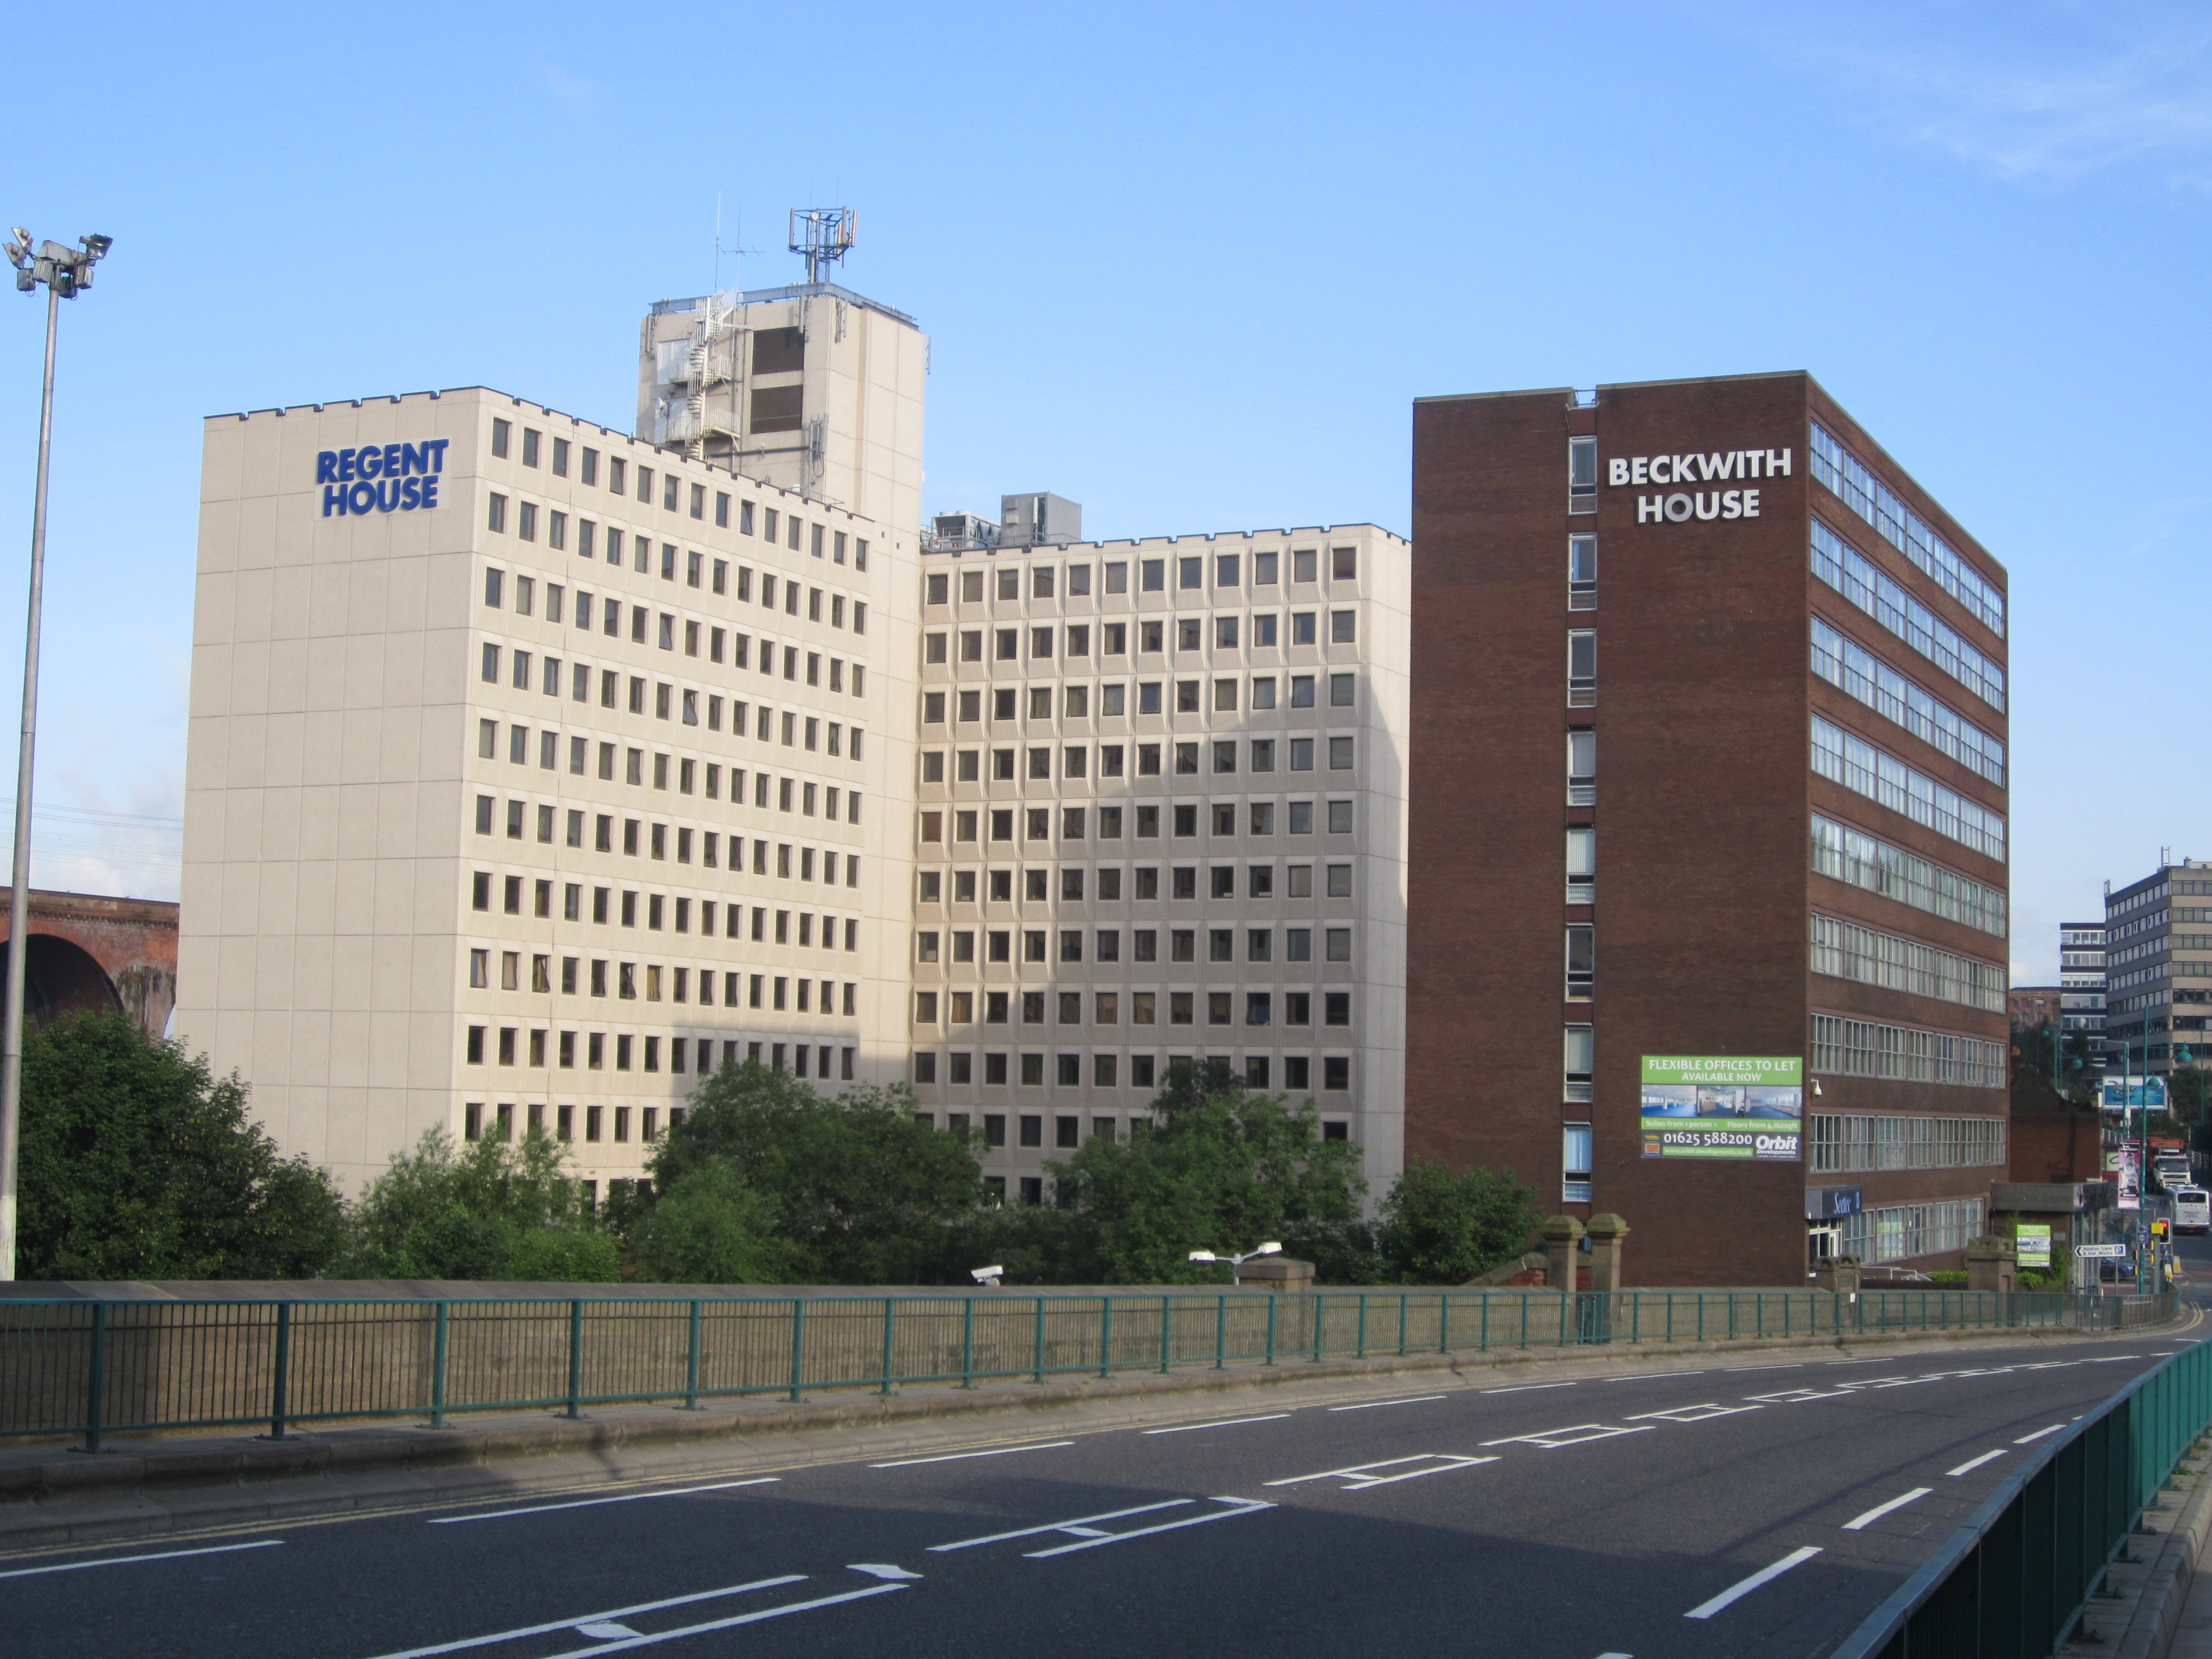 File regent house and beckwith house stockport 2 jpg wikimedia